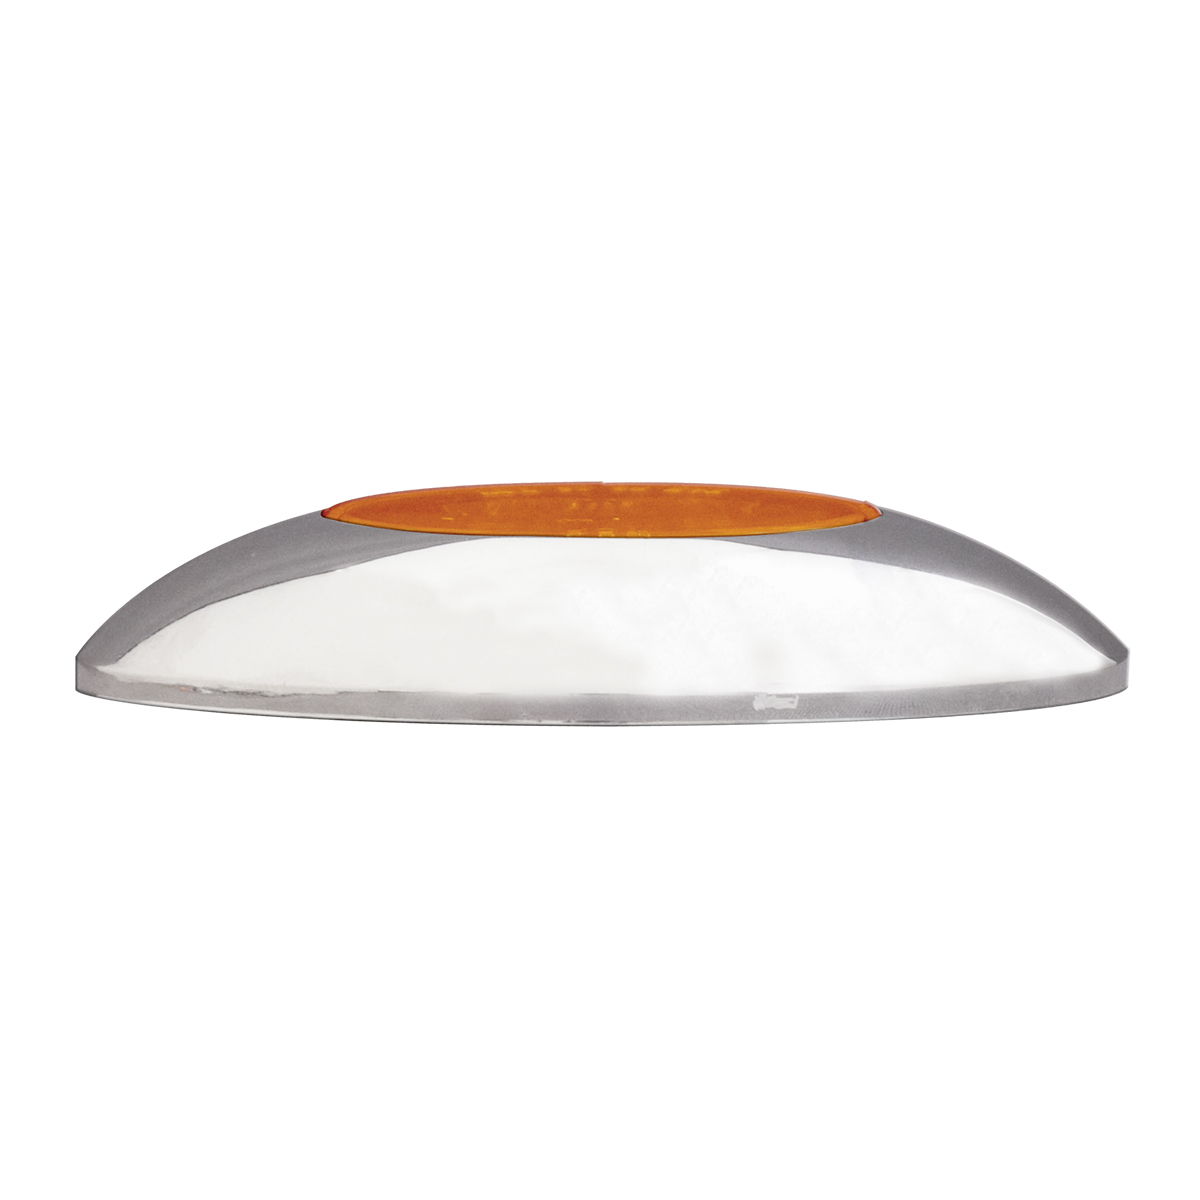 76235 Small Low Profile Surface Mount Pearl LED Marker & Turn Light w/ Chrome Bezel